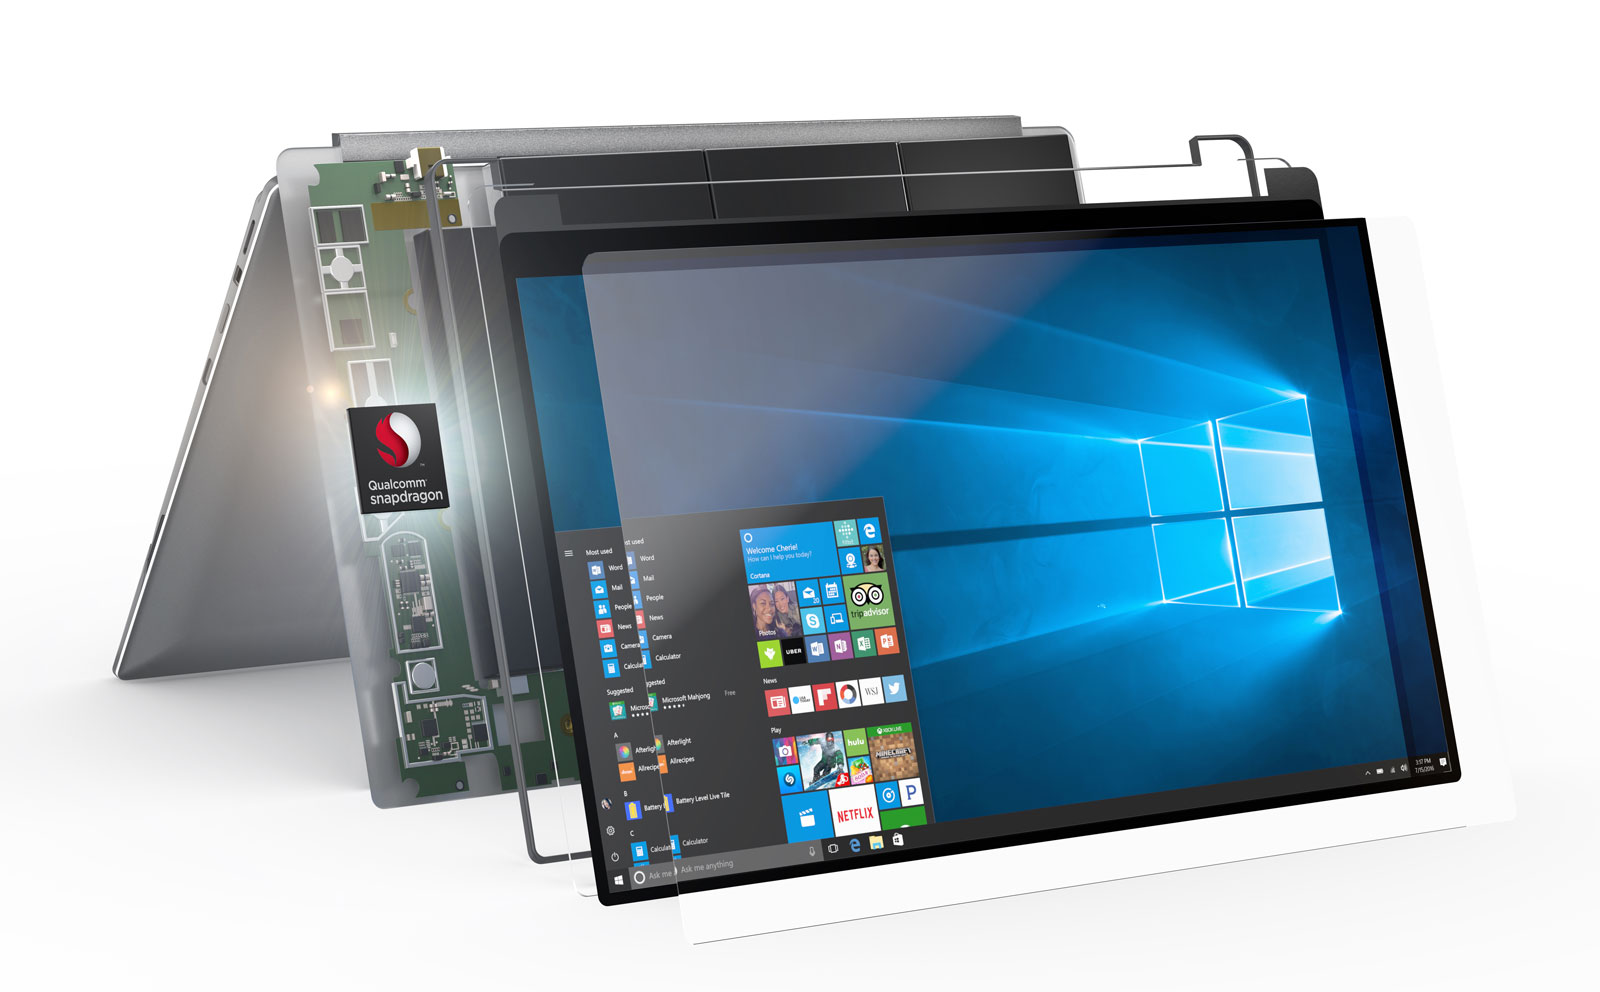 Windows 10 Notebooks Running Snapdragon SoCs Will Now Support ARM64